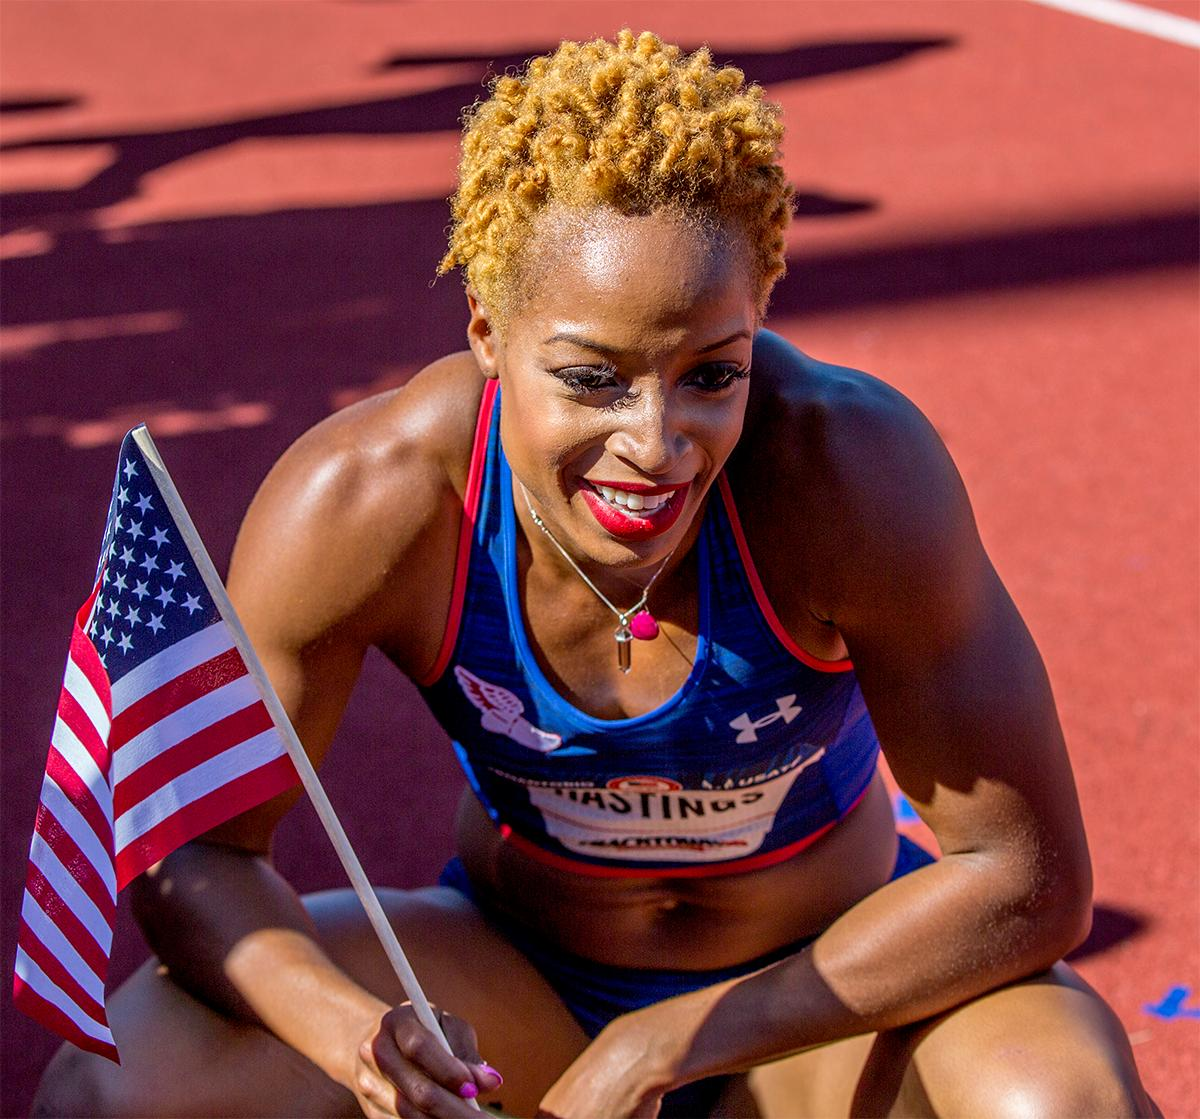 Under Armour/NYAC's Natasha Hastings appropriately went with gold hair and will soon be looking to match it with a gold medal in Rio after she qualified by placing third in the 400 meters final with a time of 50.17. Photo by August Frank, Oregon News Lab